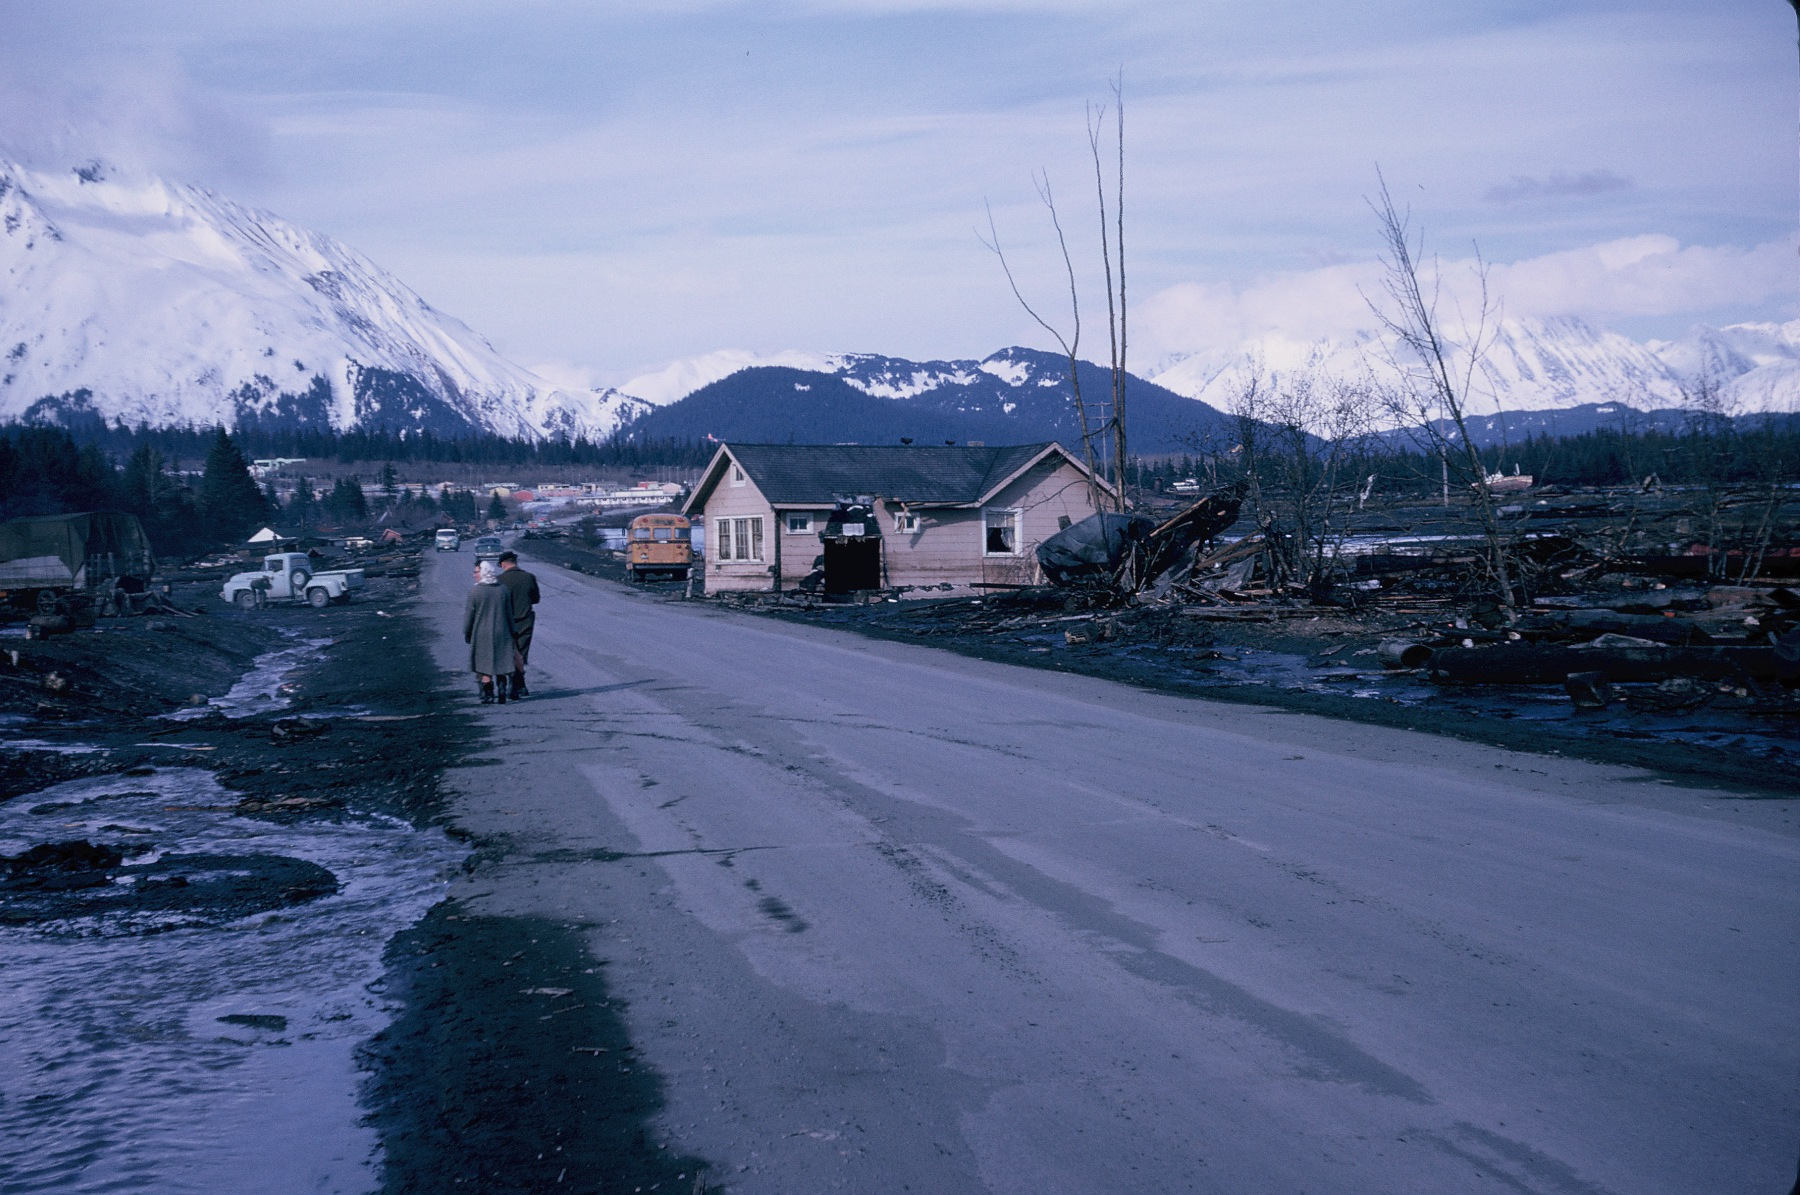 alaska earthquake The 1964 alaskan earthquake, also known as the great alaskan earthquake and good friday earthquake, occurred at 5:36 pm ast on good friday, march 27 across south-central alaska, ground fissures, collapsing structures, and tsunamis resulting from the earthquake caused about 139 deaths.